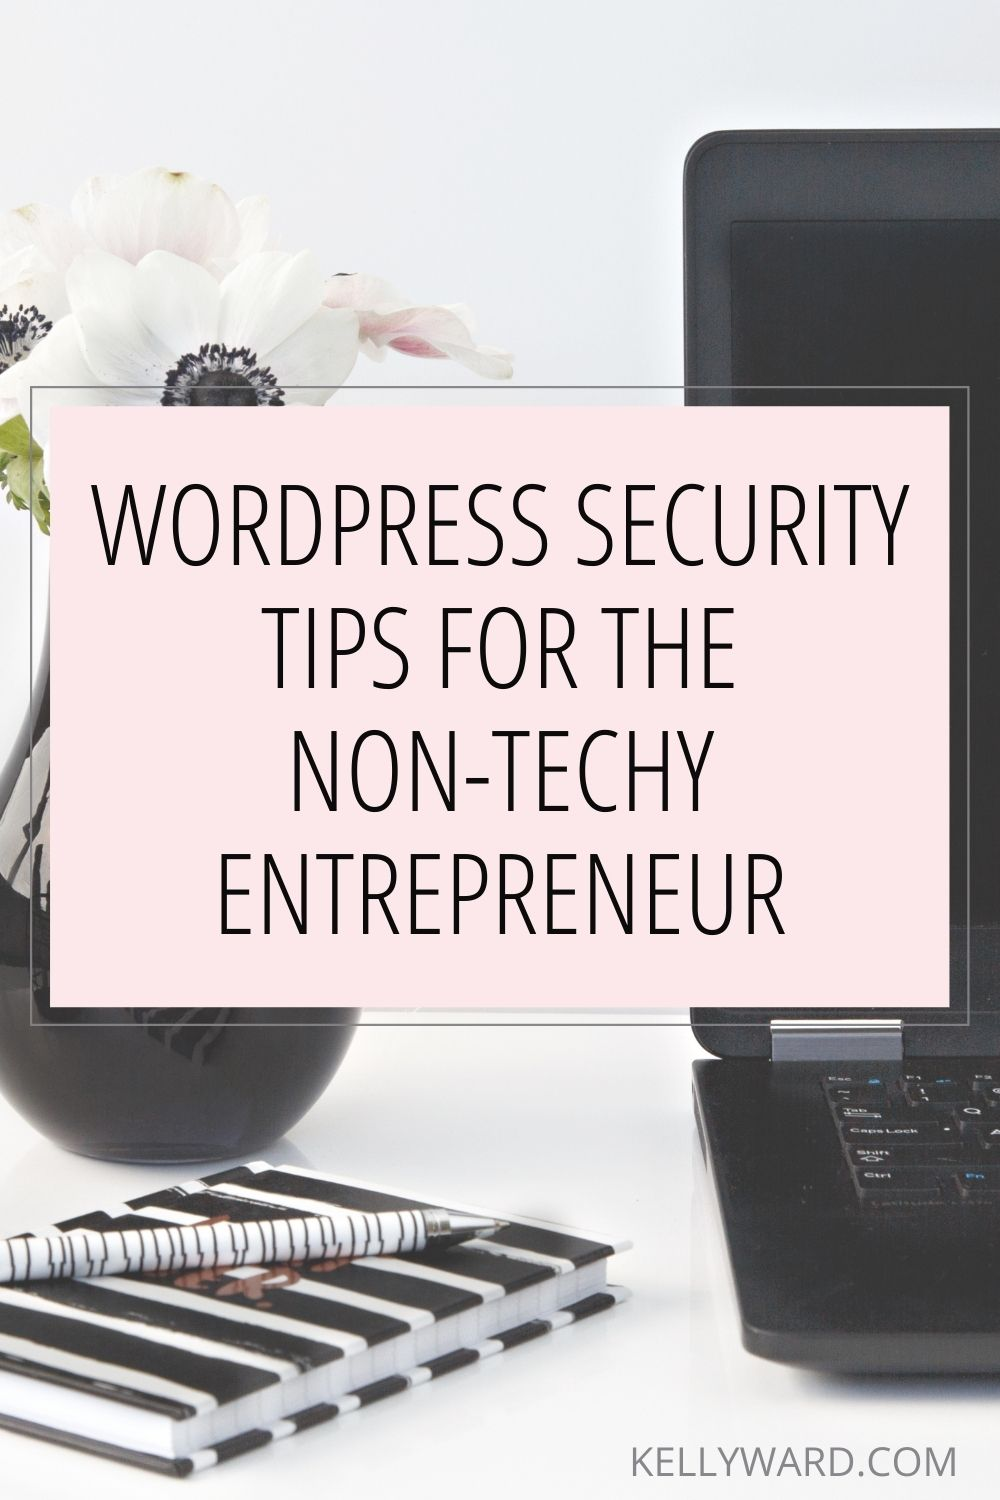 WordPress Security Tips for the Non-Techy Entrepreneur